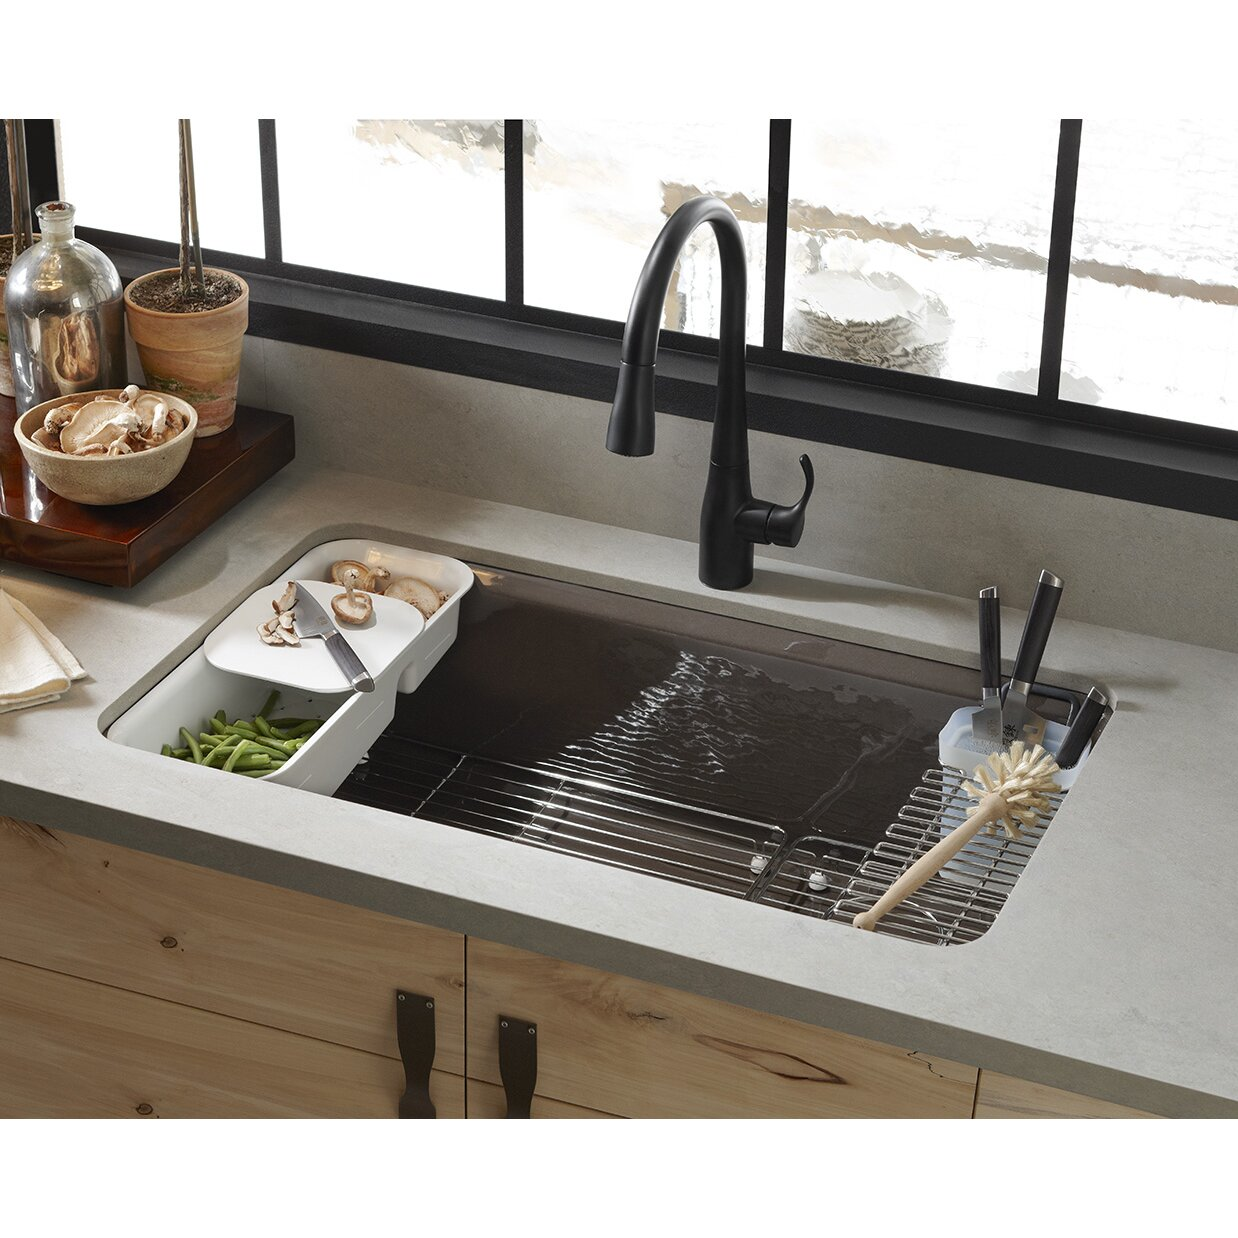 Riverby Utility Rack with Soaking Cup Wayfair